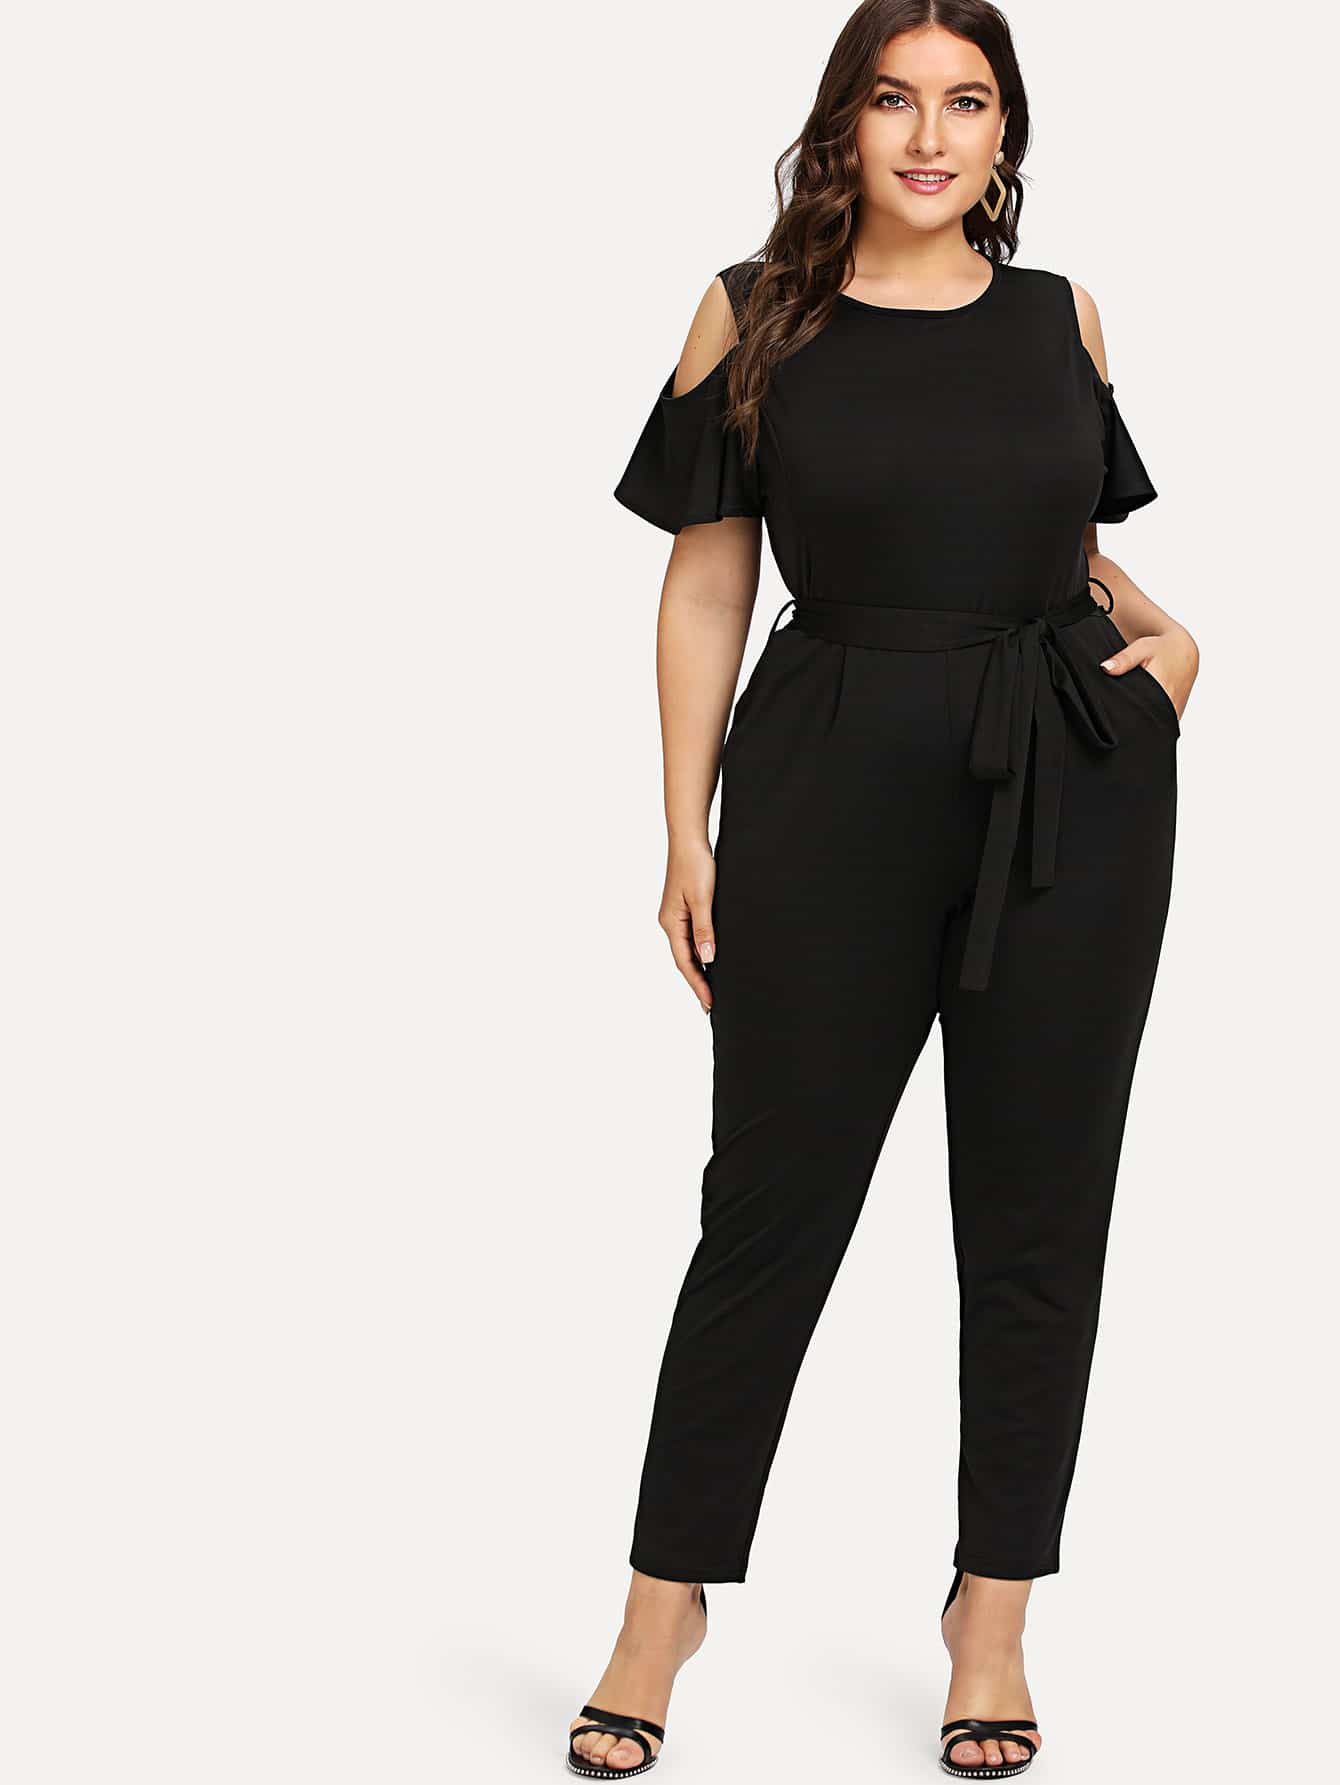 Open Shoulder Self Tie Waist Jumpsuit смеситель для кухни zorg zr 800 k a7 5